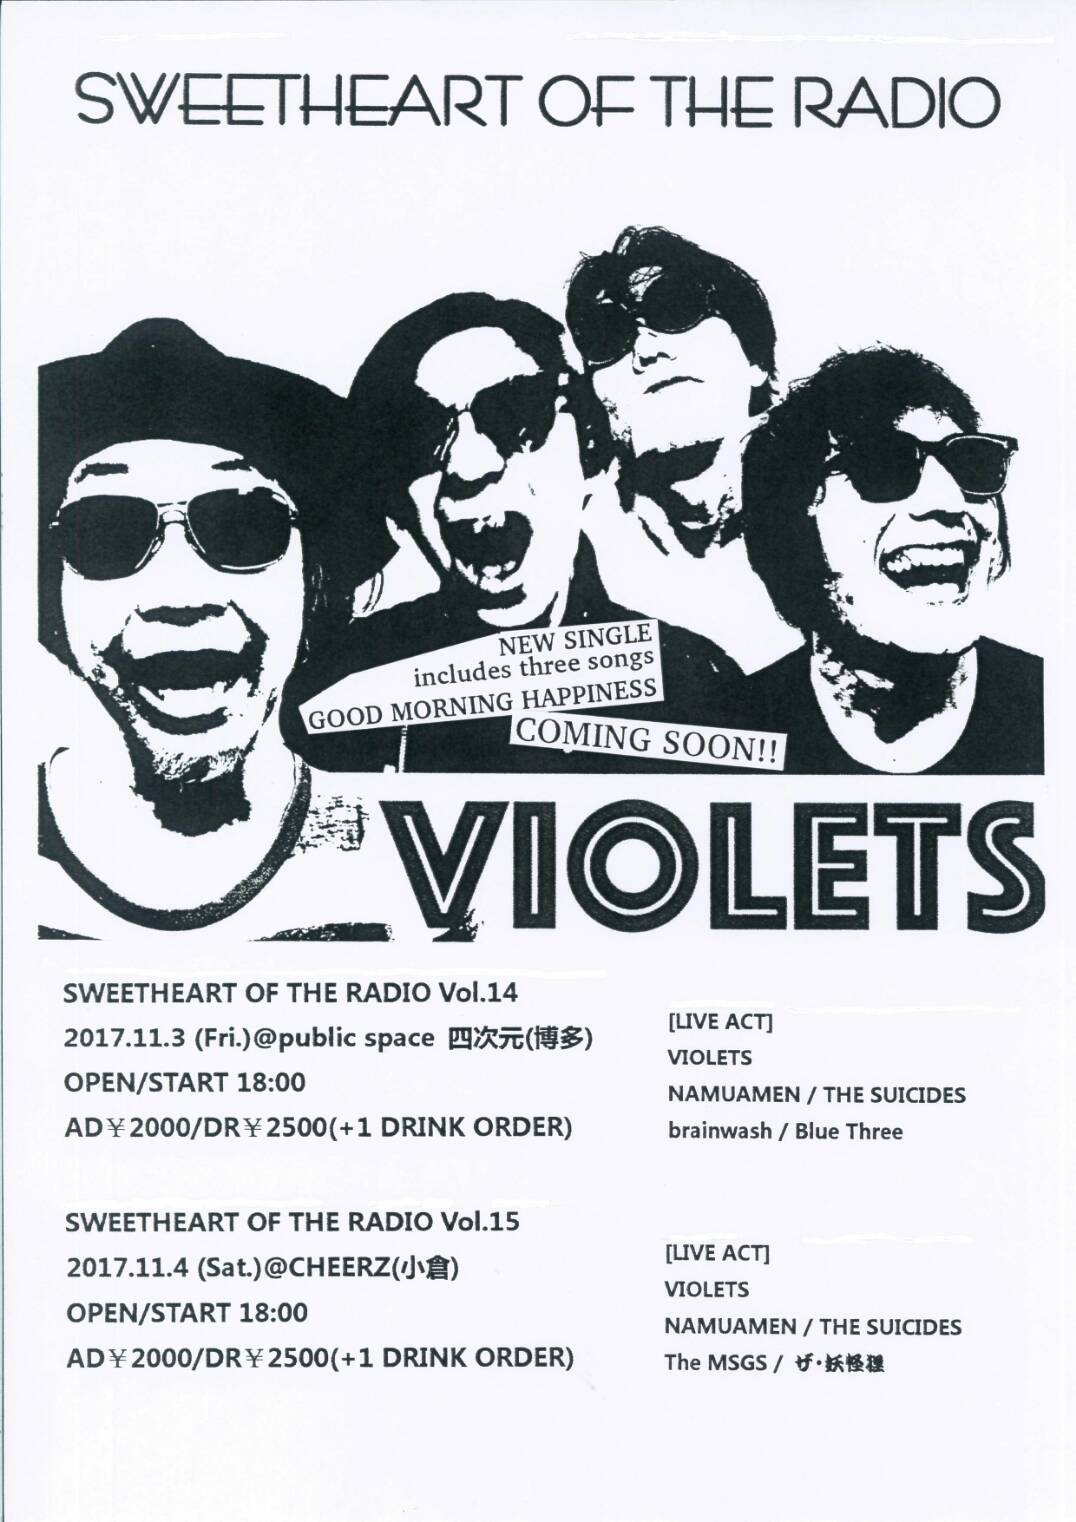 SWEETTHEART OF THE RADIO Vol.15